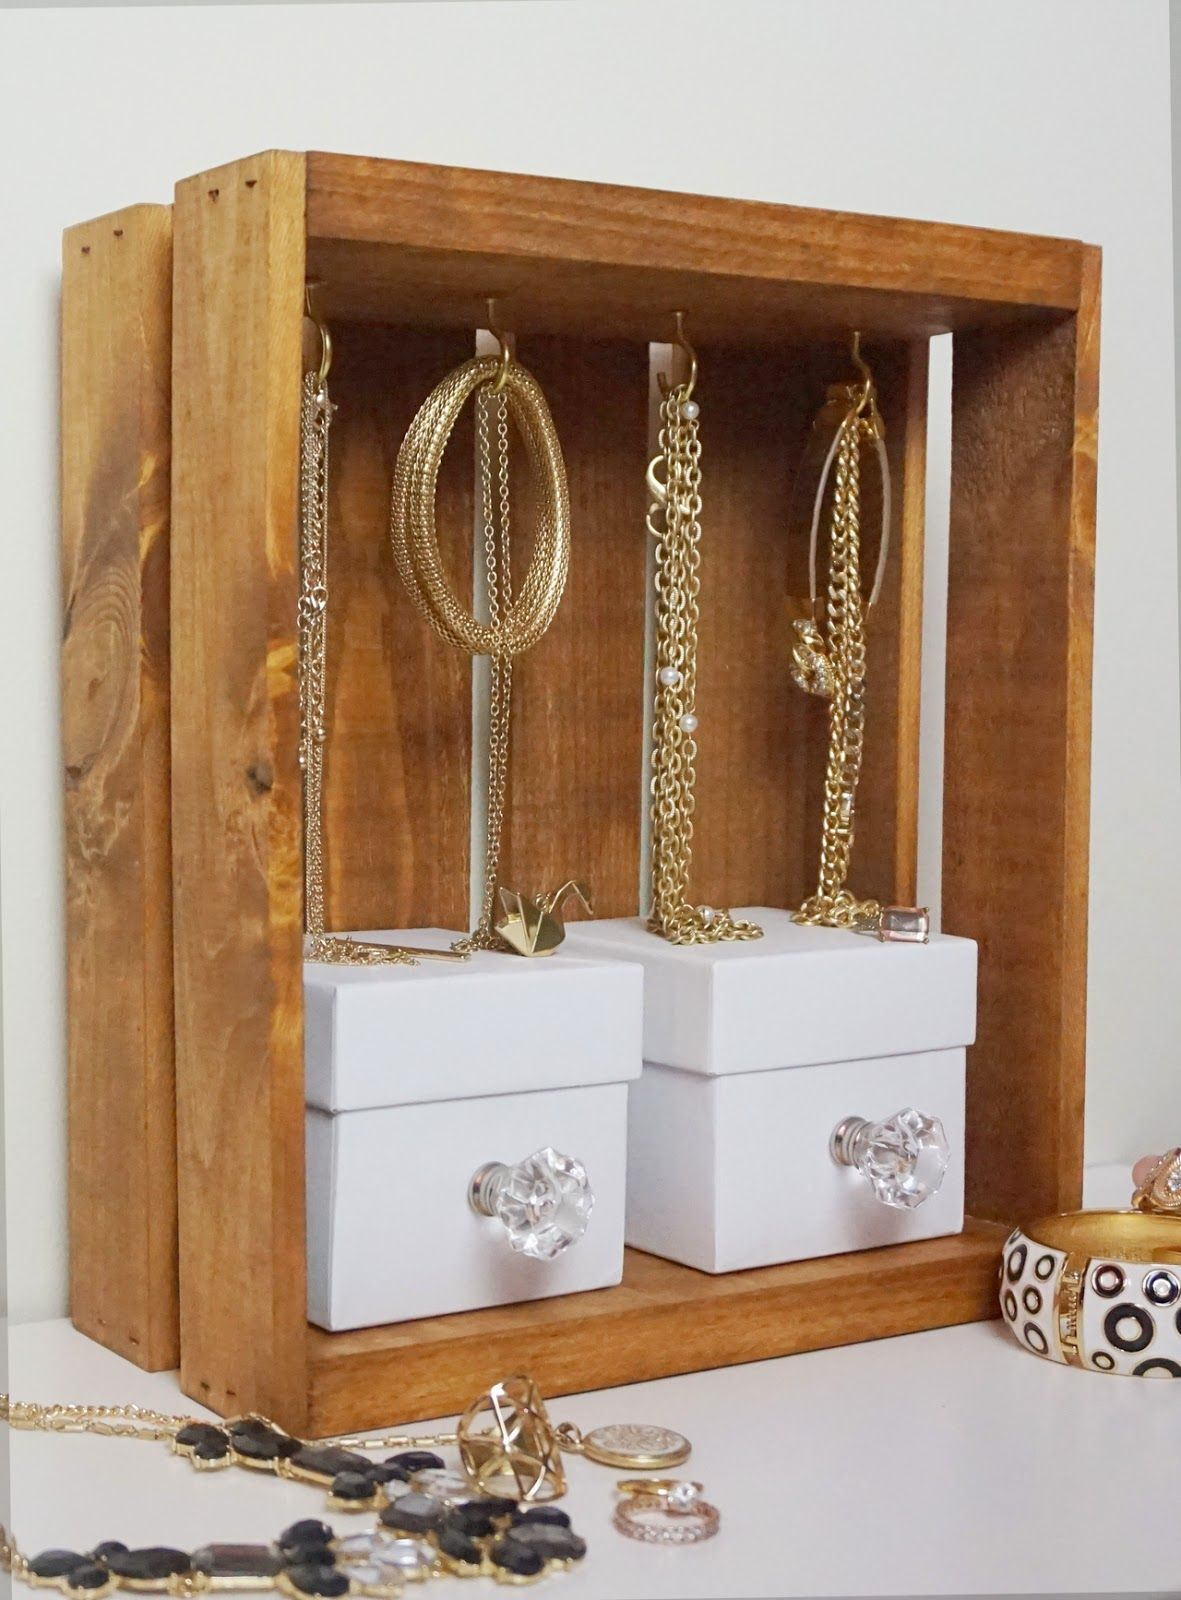 Thediydiary do it yourself jewelry display crate hometalk thediydiary do it yourself jewelry display crate solutioingenieria Gallery